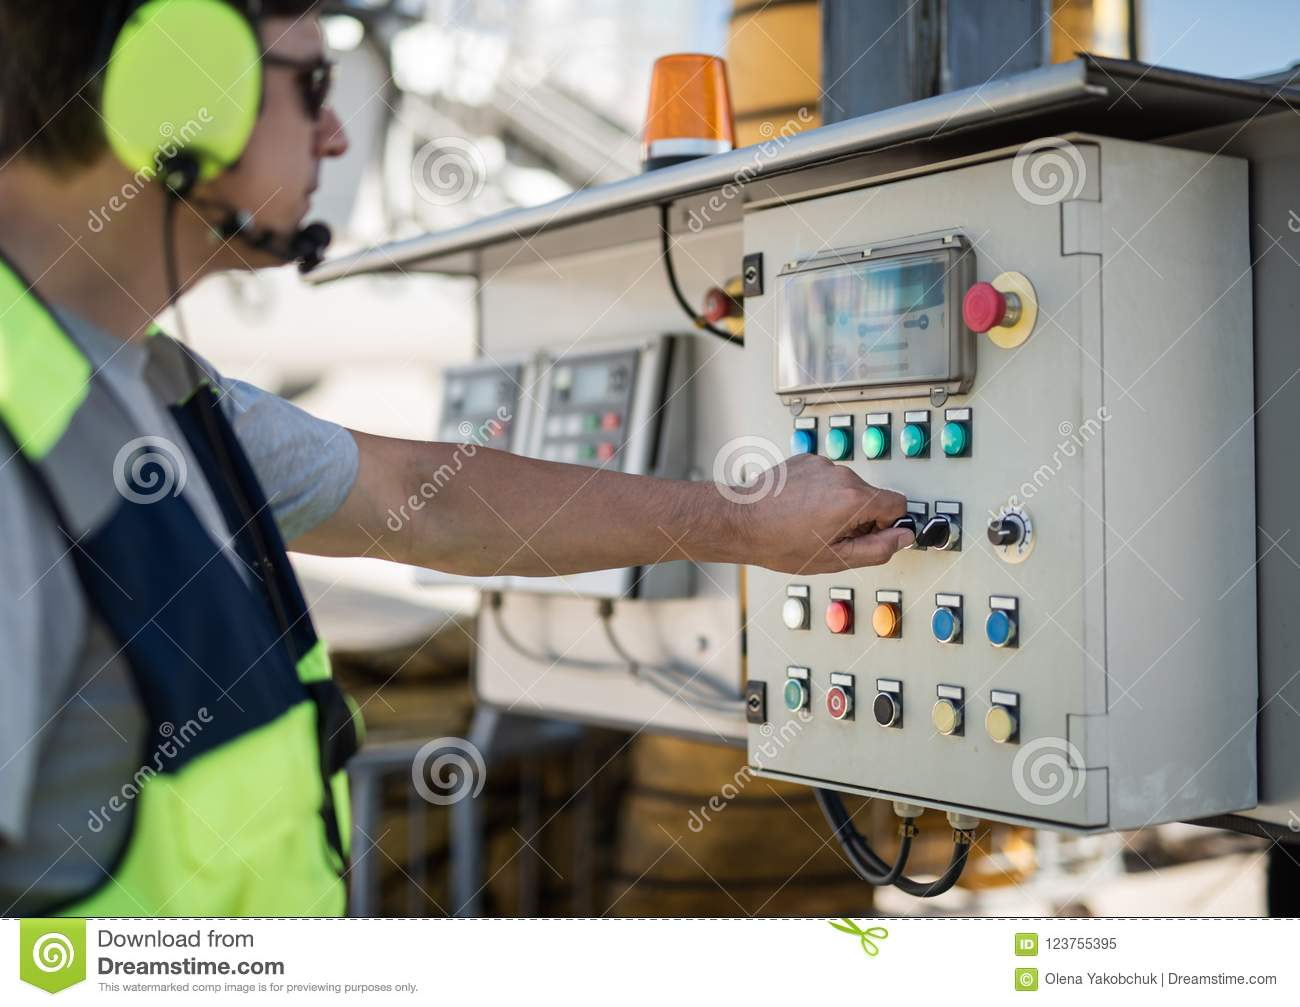 Aviation mechanic working with technical equipment